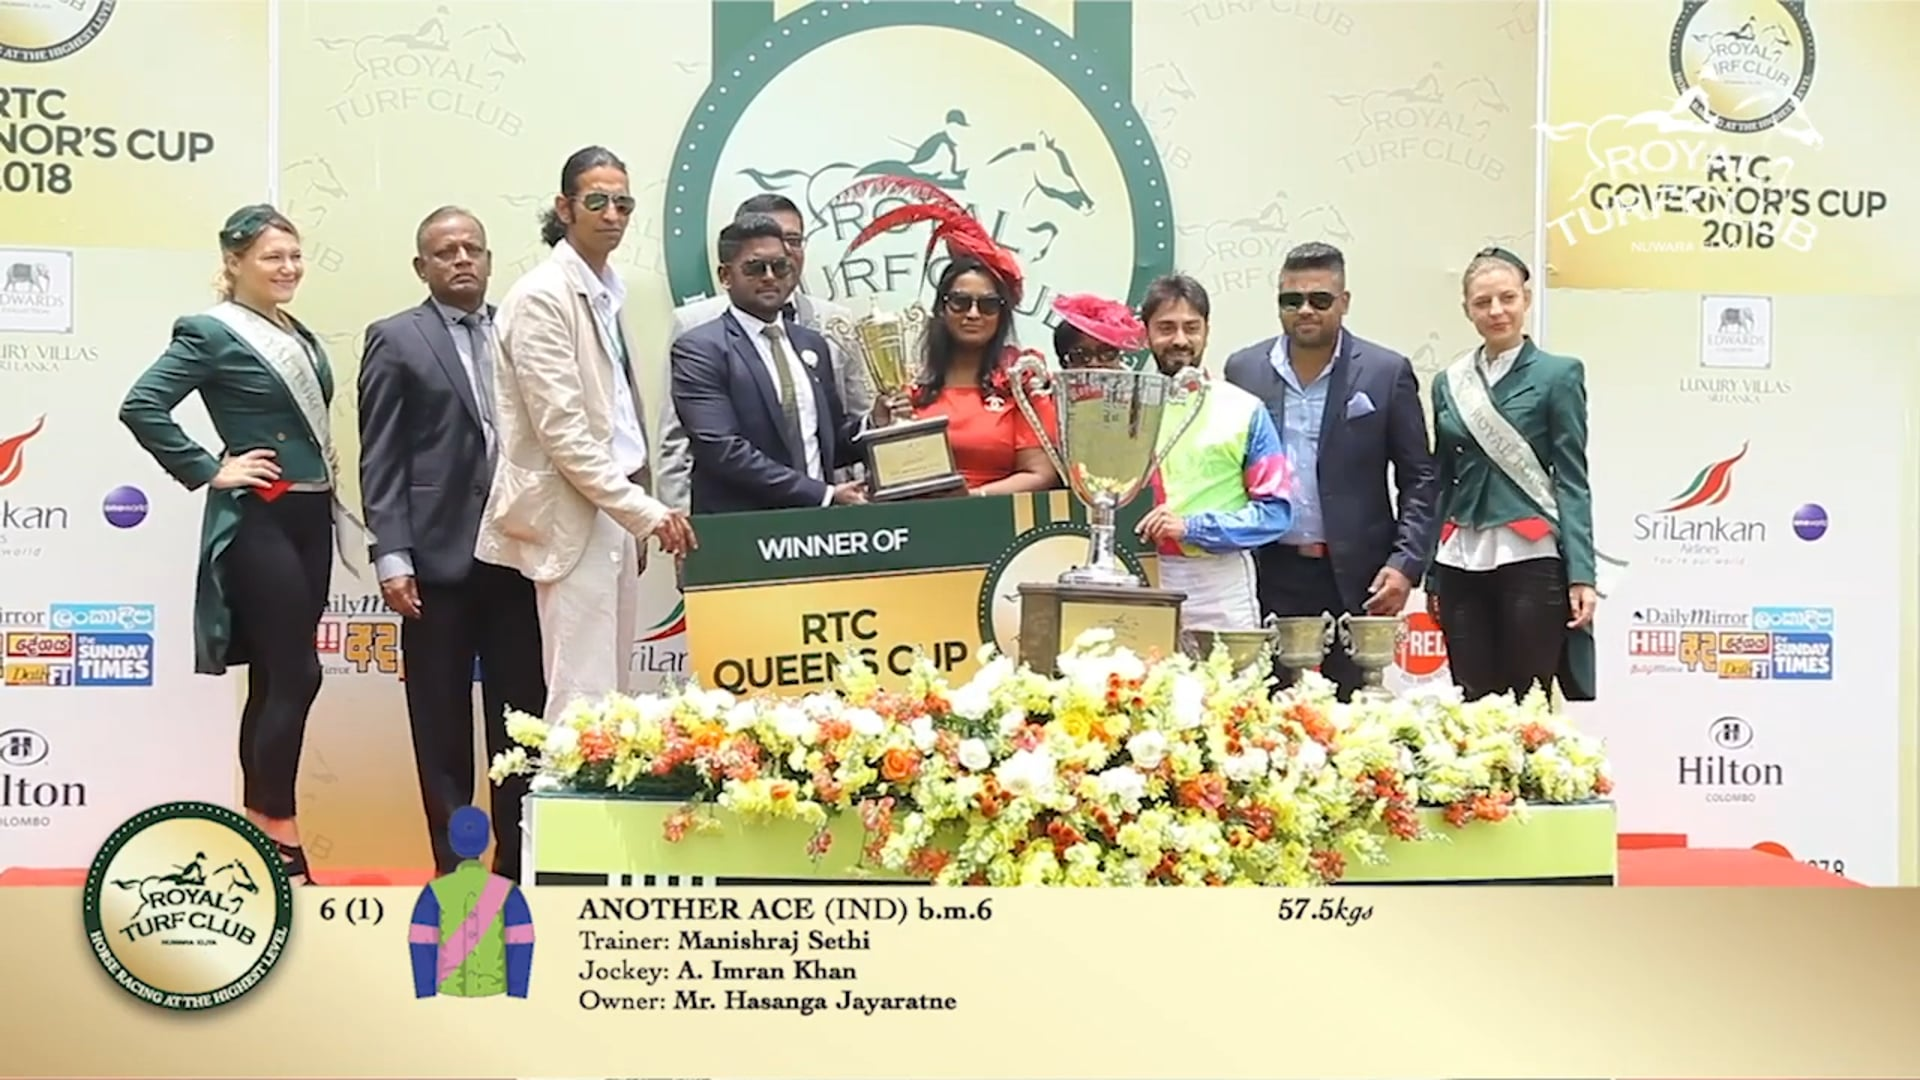 RTC Governor's Cup Race Day 2018